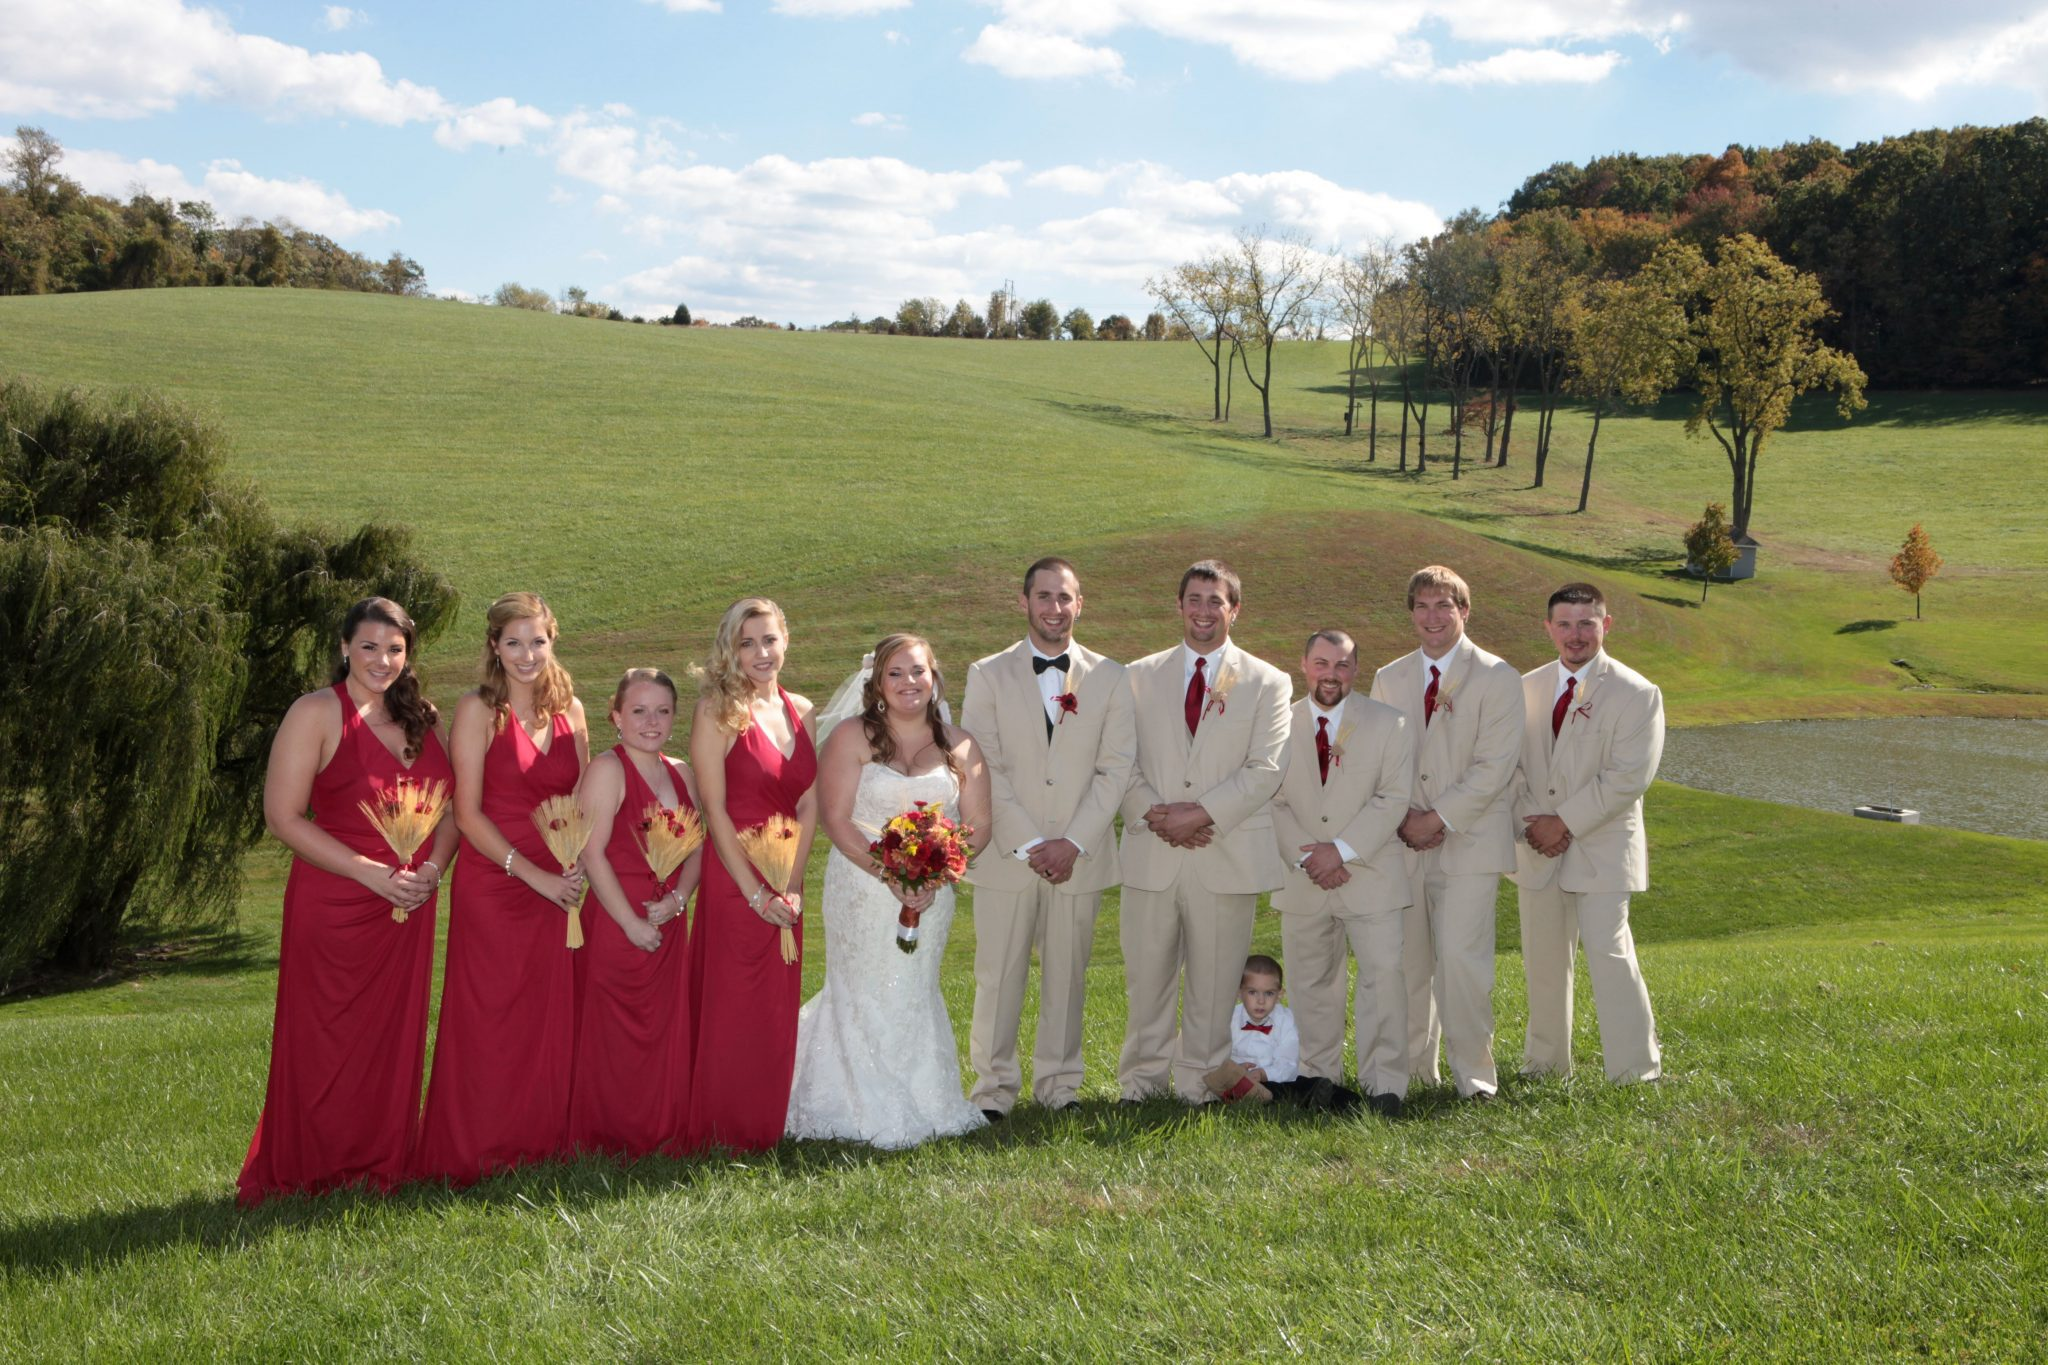 Wedding party pose on the expansive grounds of this private estate for weddings in Maryland